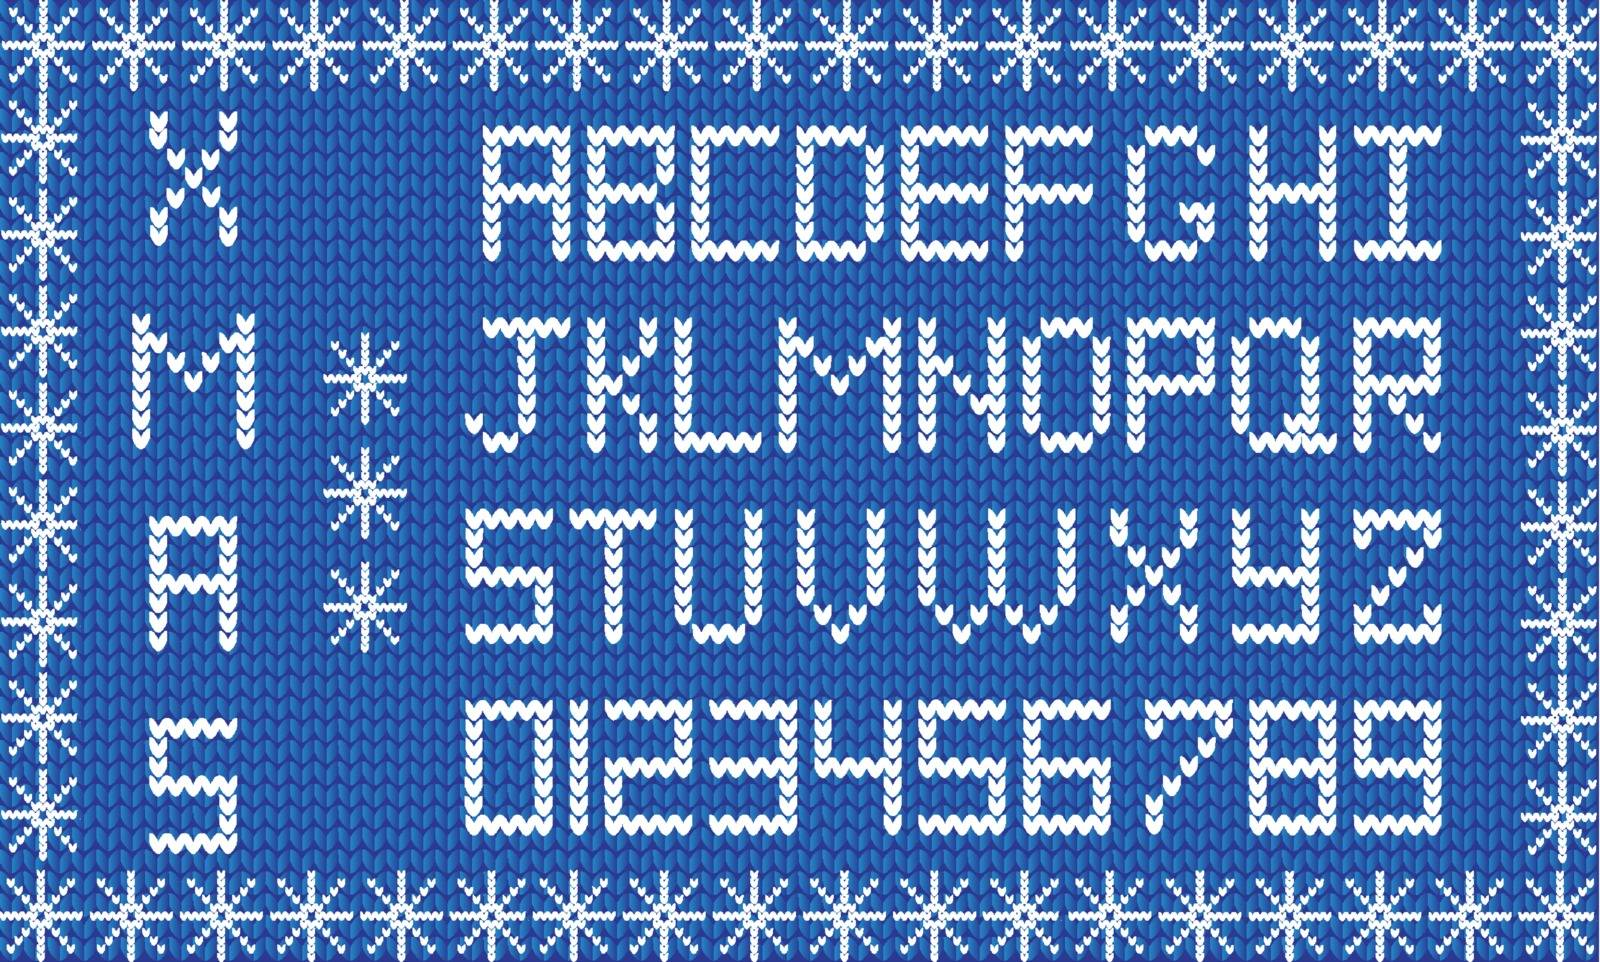 Knit new year or christmas alphabet framed with snowflakes. New year navy blue background with white knitted alphabet. Fabric Christmas or New Year script. Vector knit font, signs, symbols, numerals.